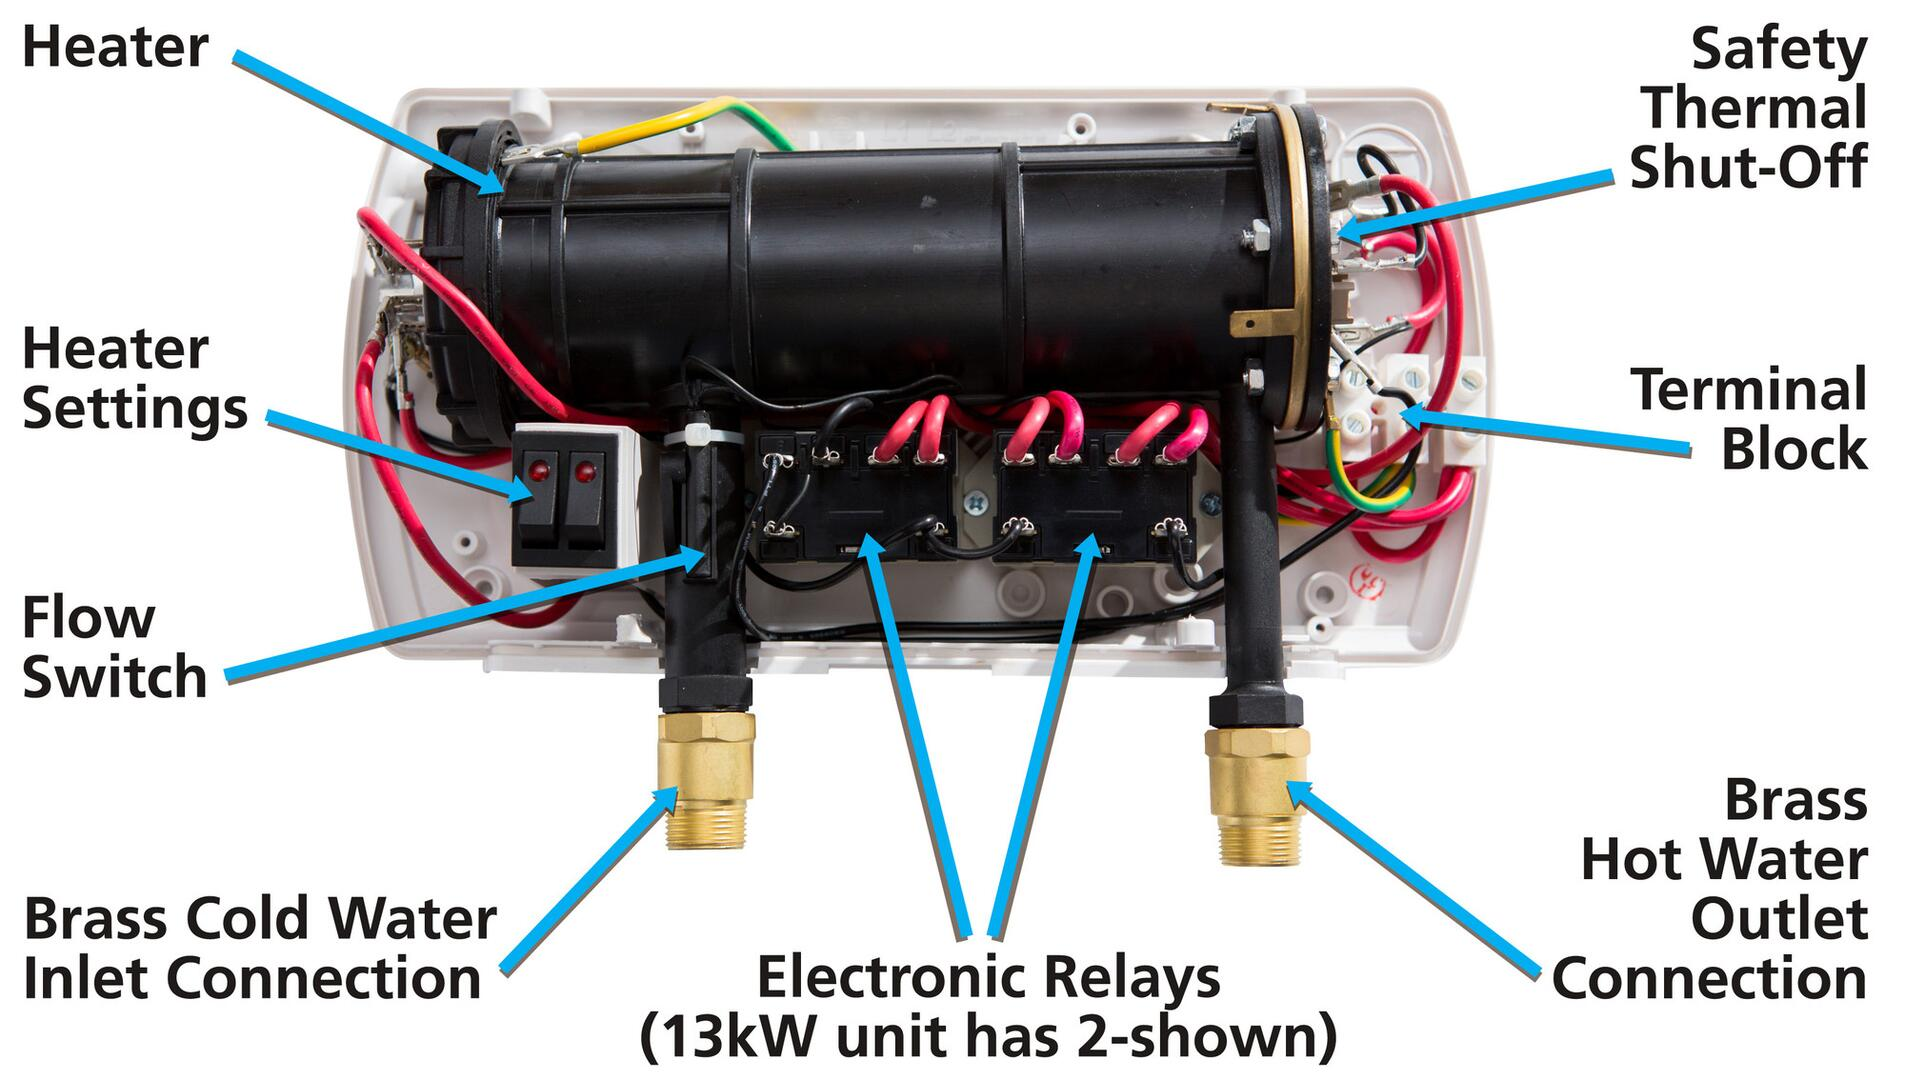 Atmor At90003 Appliances Connection Outlet Bo Wiring On Electric Water Heater Electrical Diagram Get Paid To Review This Product